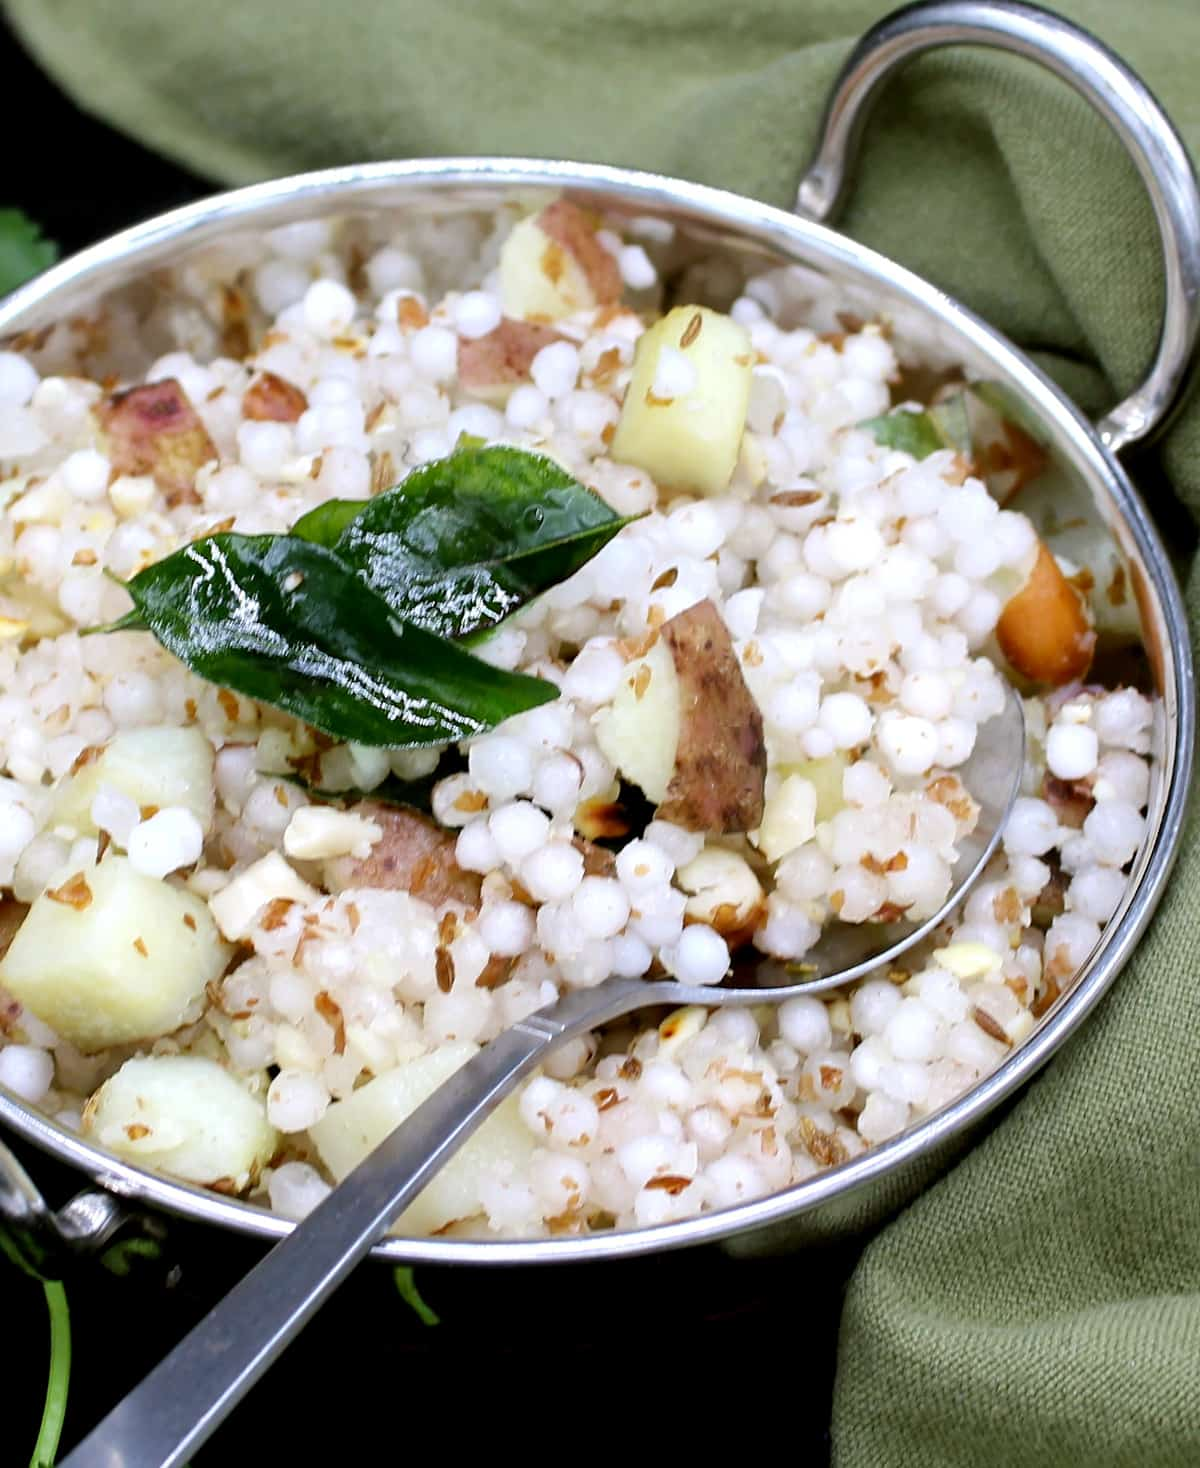 A steel wok or kadhai with sabudana khichdi, made with tapioca pearls, with a garnish of curry leaves, peanuts, potatoes and with cilantro leaves scattered around. Next to the wok is a green and gold napkin on a black background.